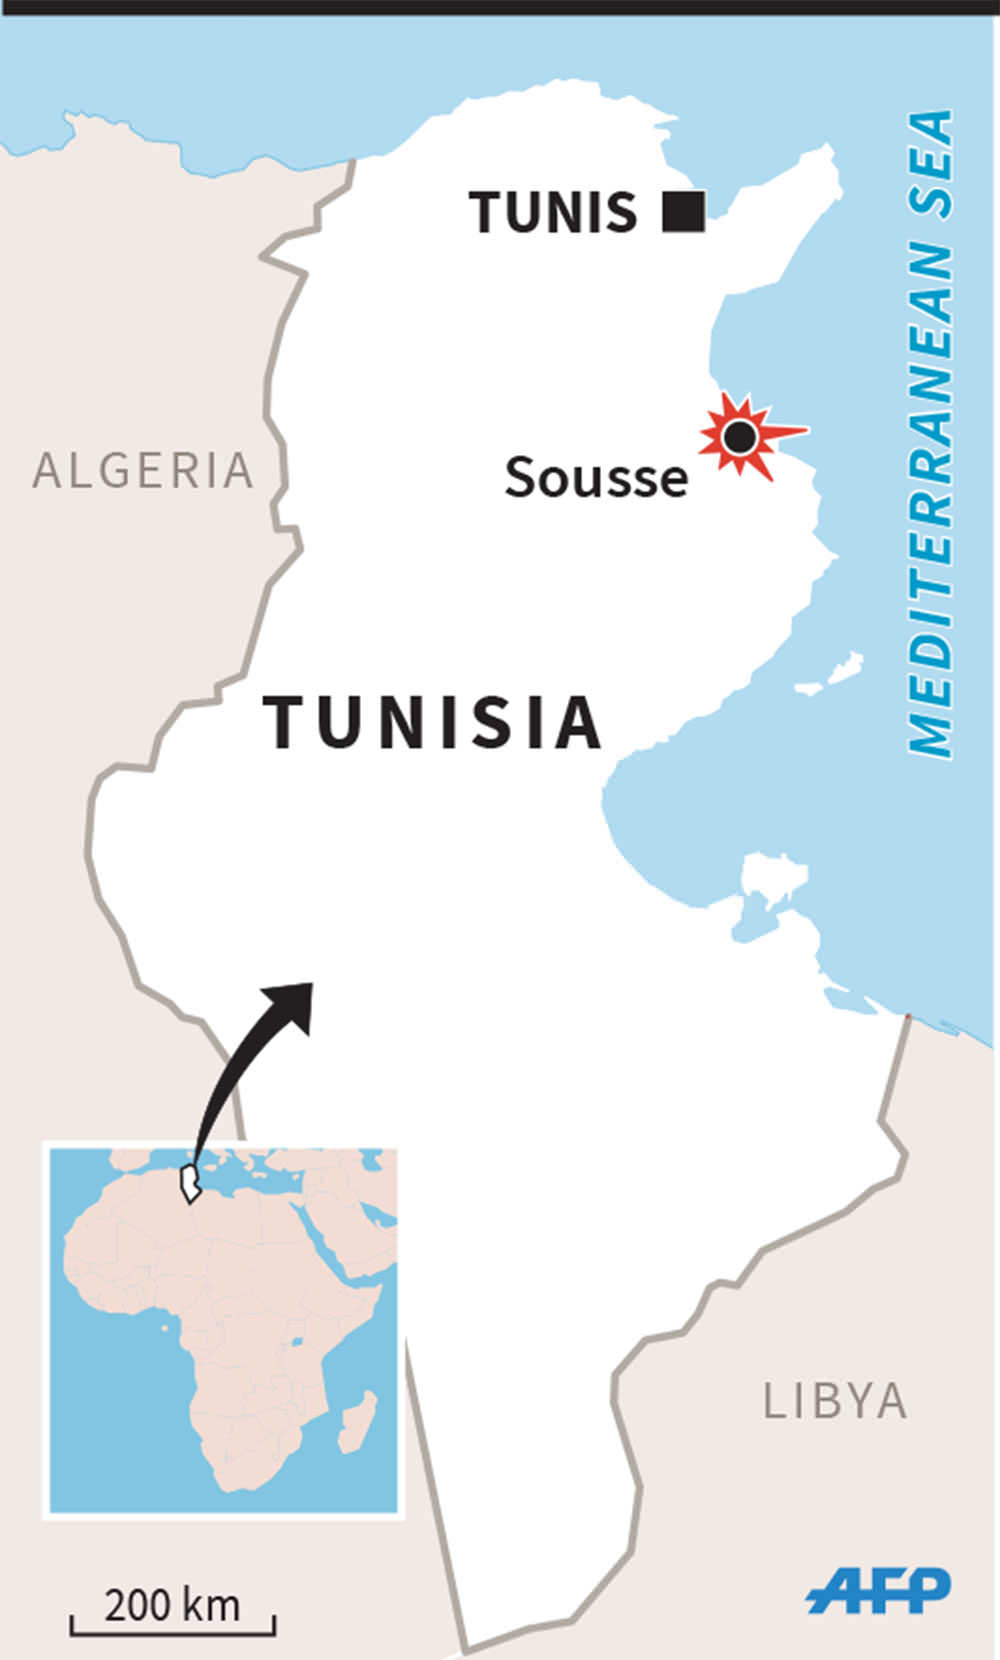 Sousse is one of Tunisia's top tourist destinations